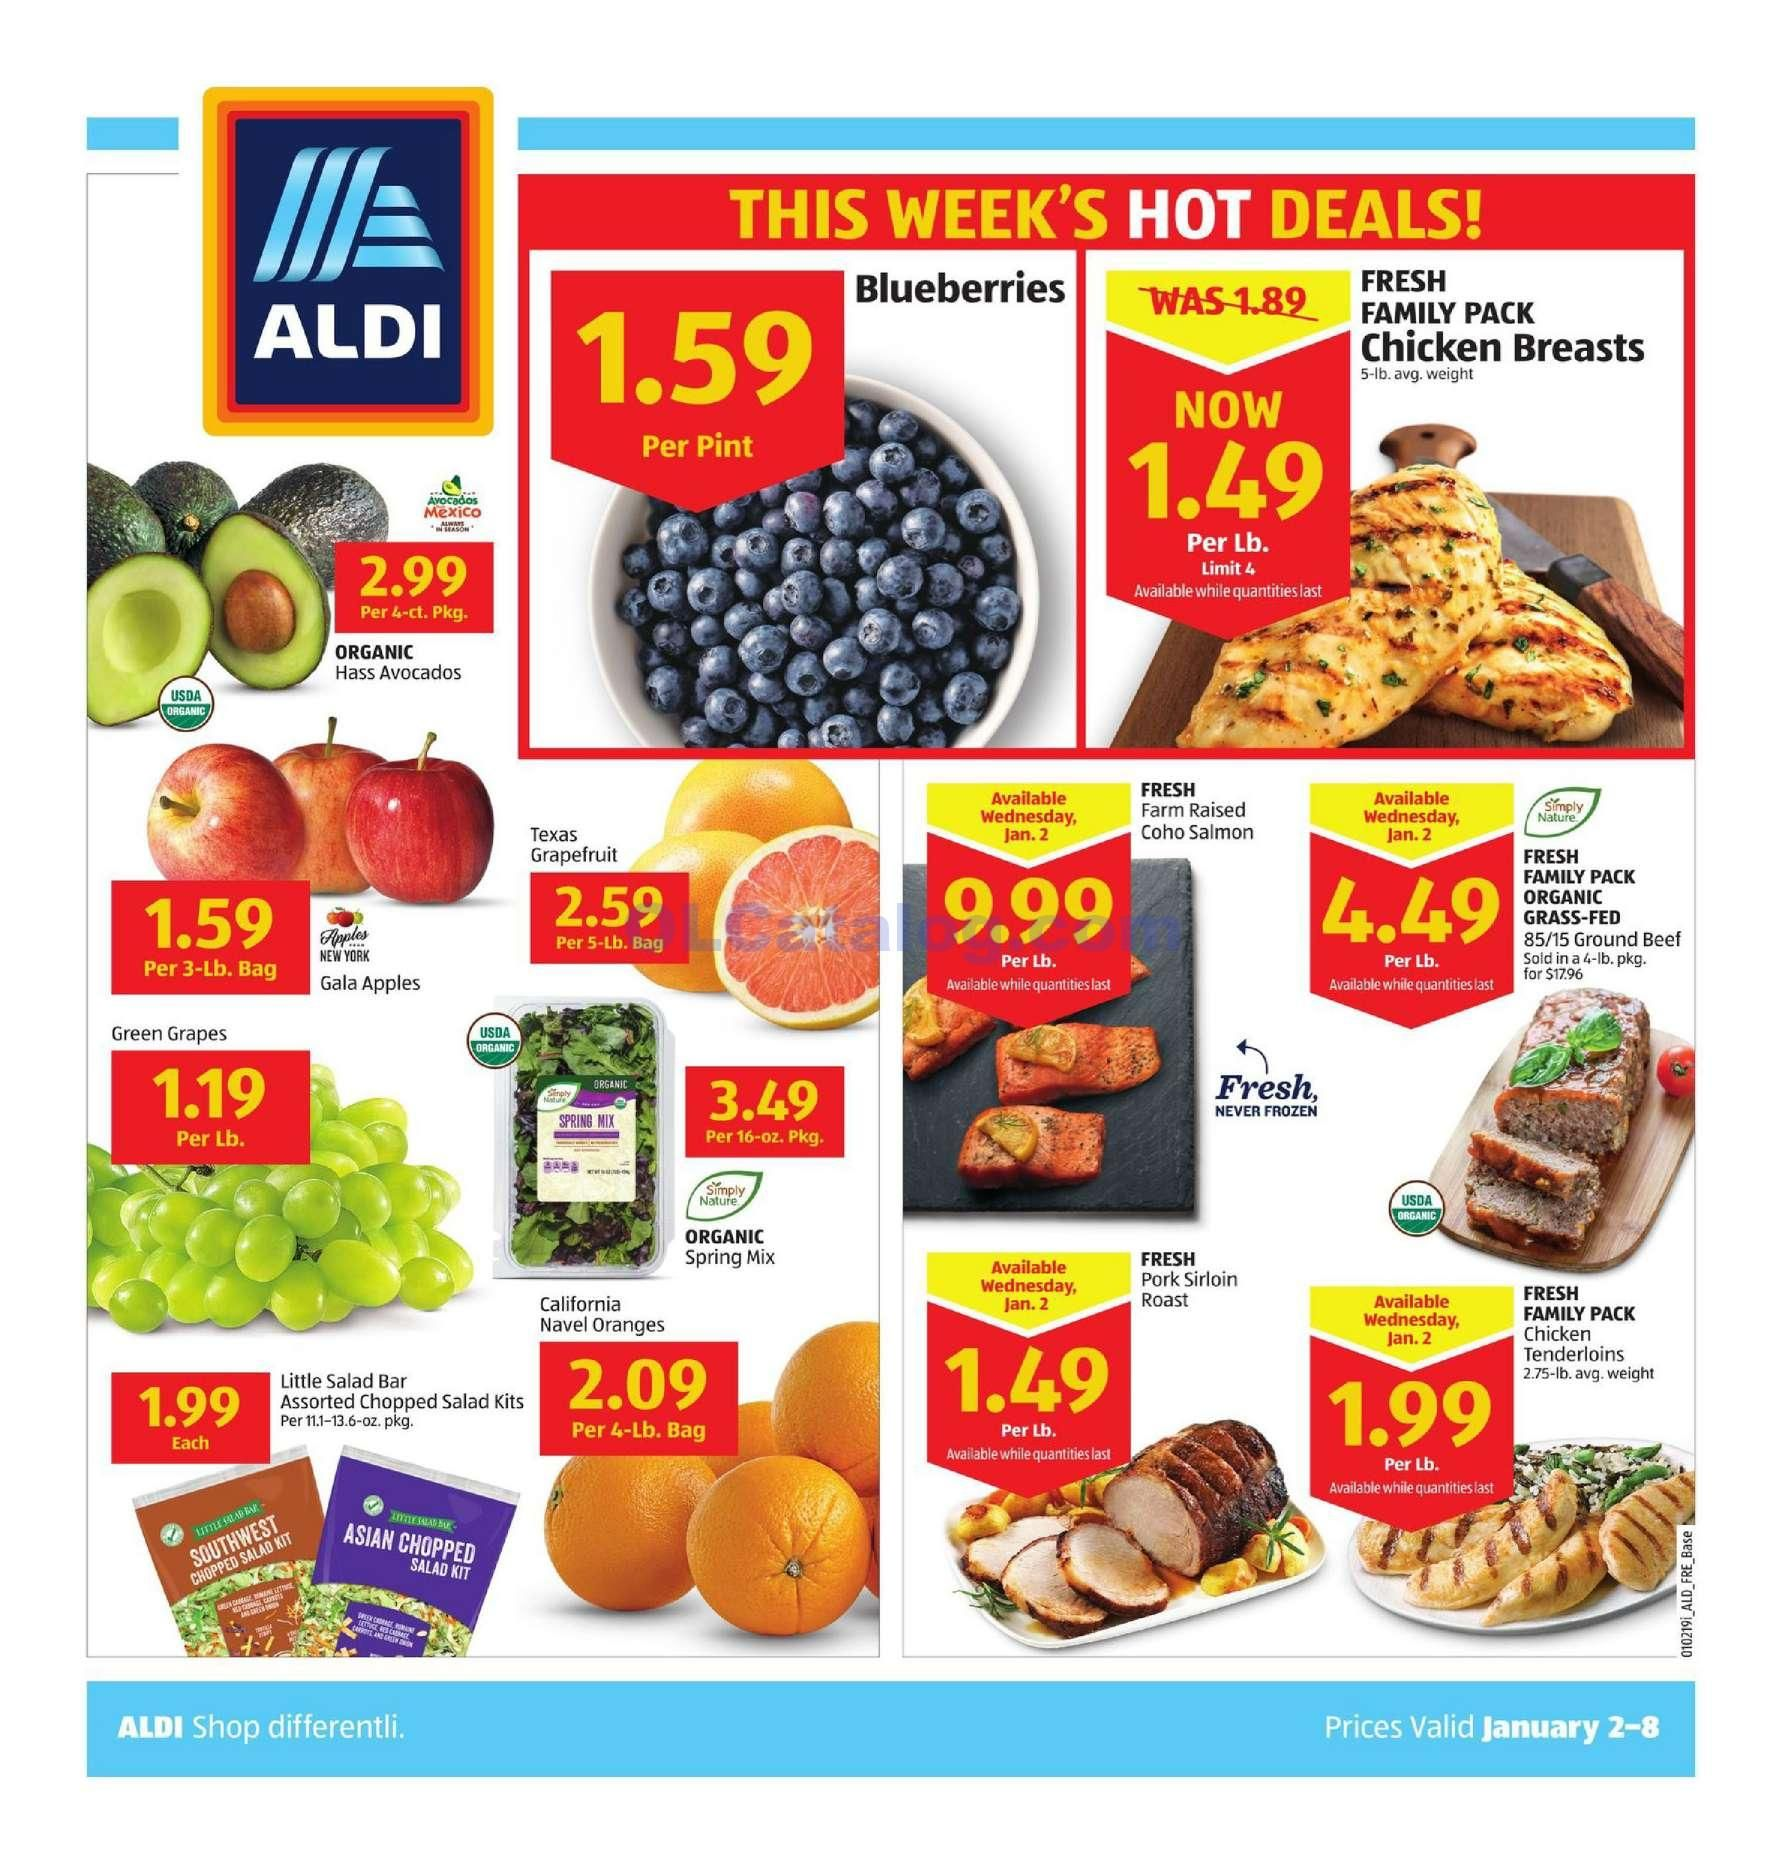 Aldi Weekly Ad January 2 8 2019 View The Latest Aldi Flyer And Weekly Circular Ad For Aldi Here Likewise You Can Find The Aldi Grocery Savings Weekly Ads